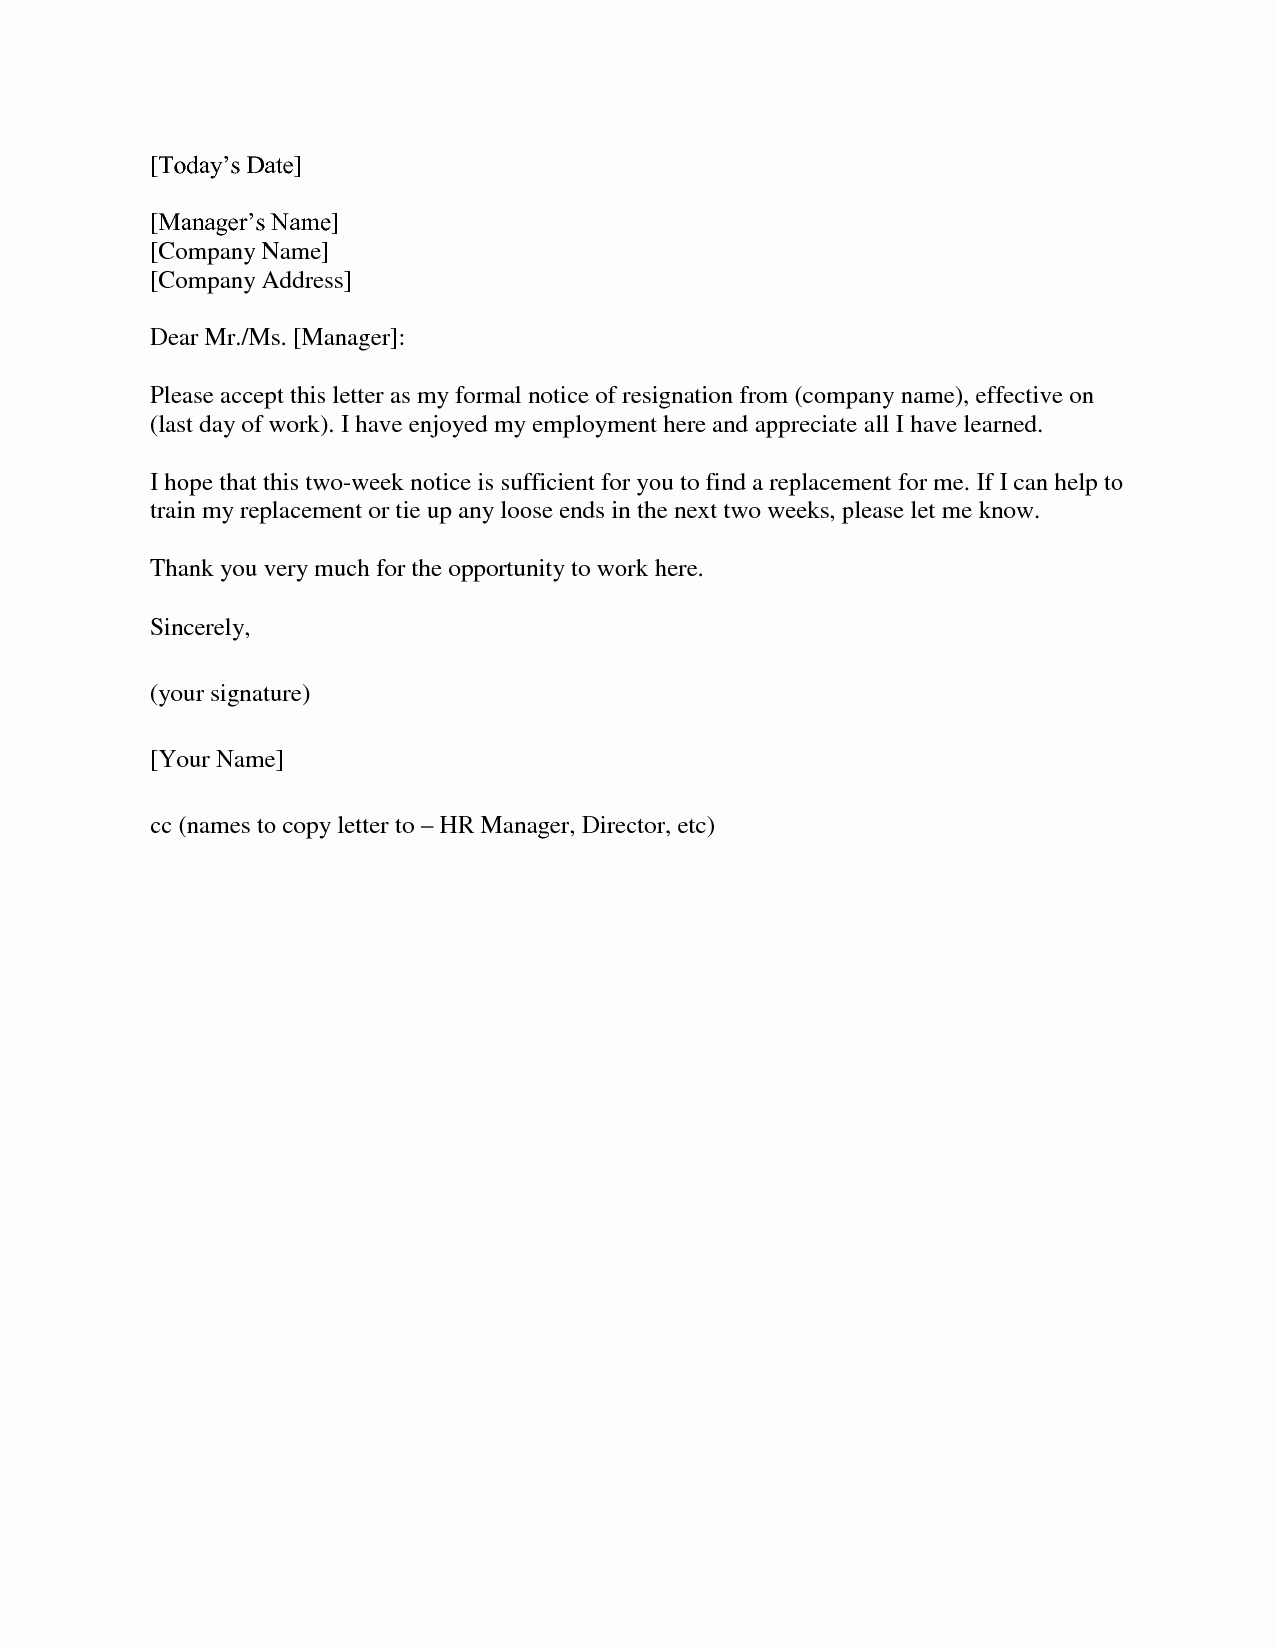 Formal Resignation Letters Sample Inspirational 2 Weeks Notice Letter